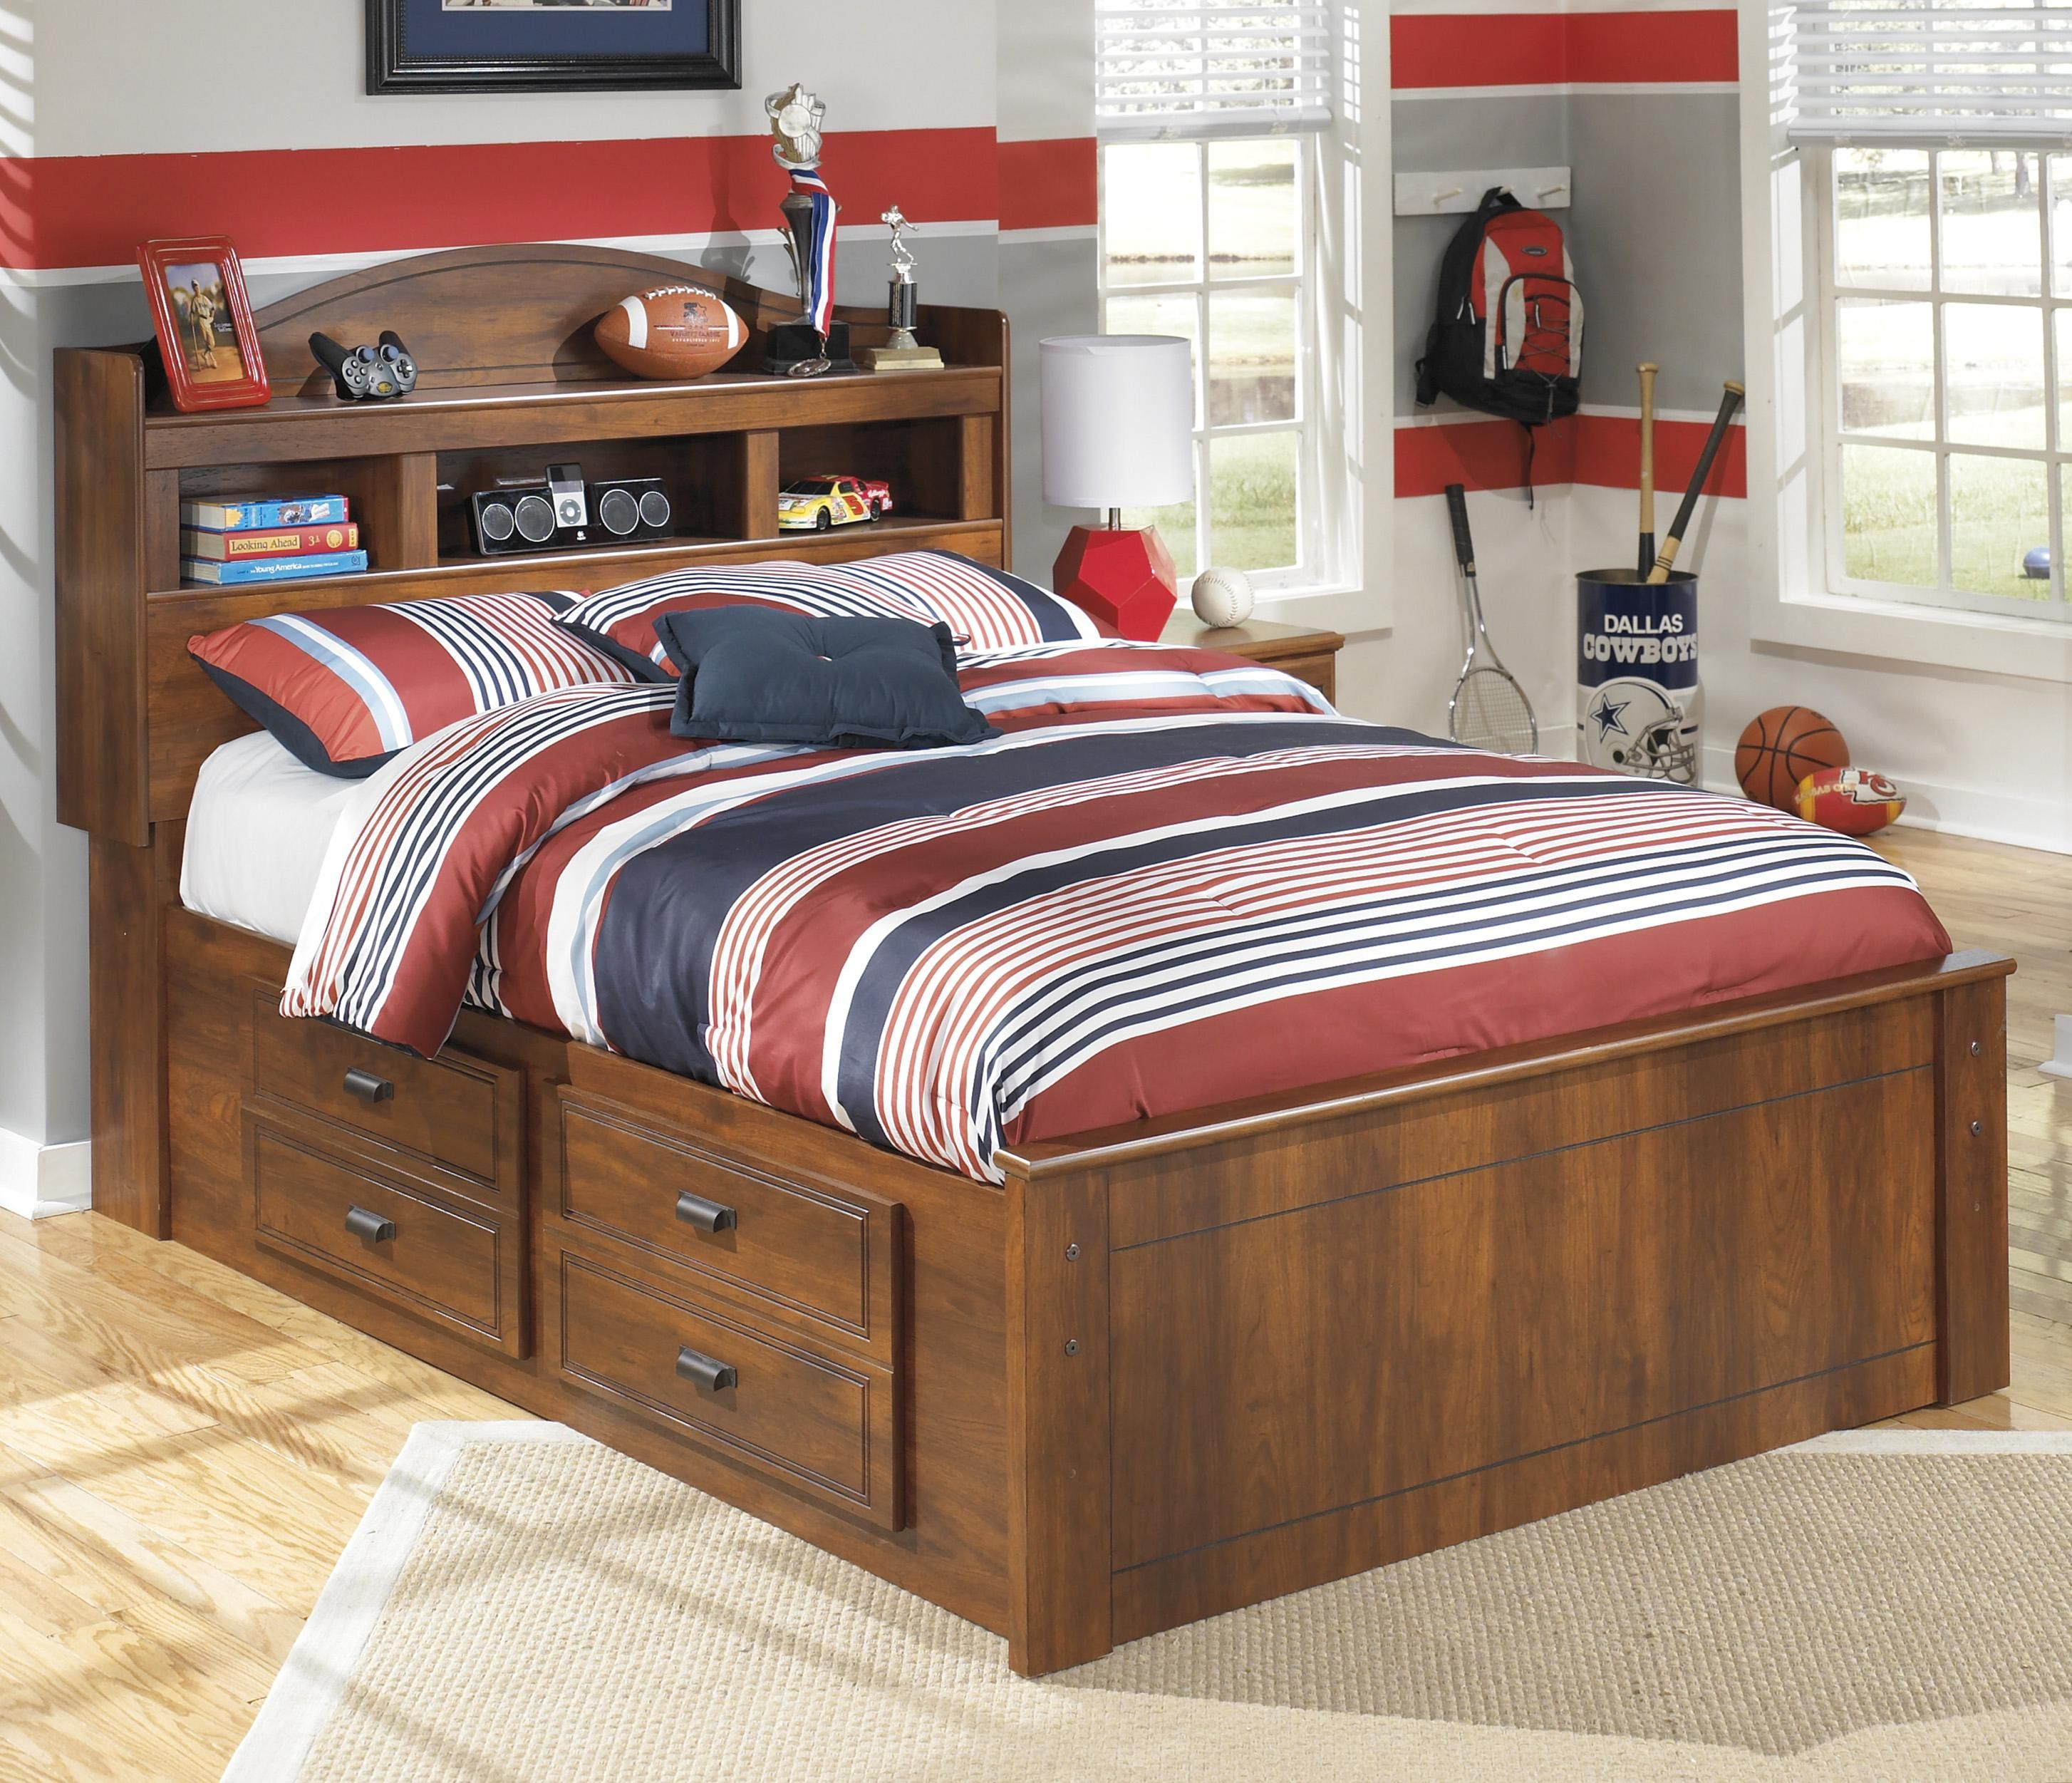 small size value wooden room beds for of kids in bed drawers full white space ideas with e color design underbed best